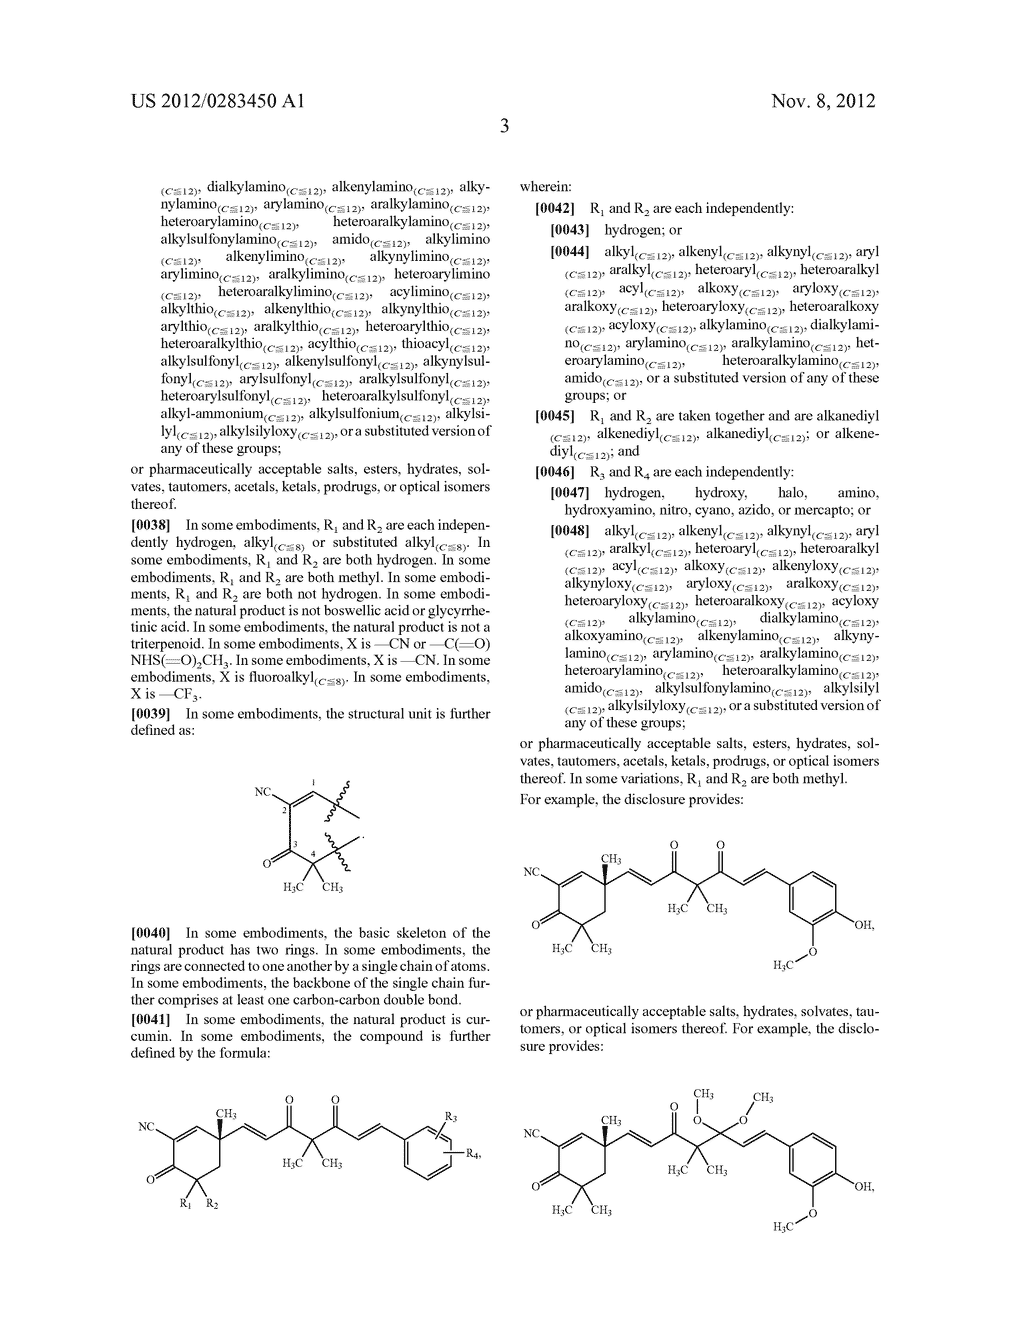 COMPOUNDS INCLUDING AN ANTI-INFLAMMATORY PHARMACORE AND METHODS OF USE - diagram, schematic, and image 28